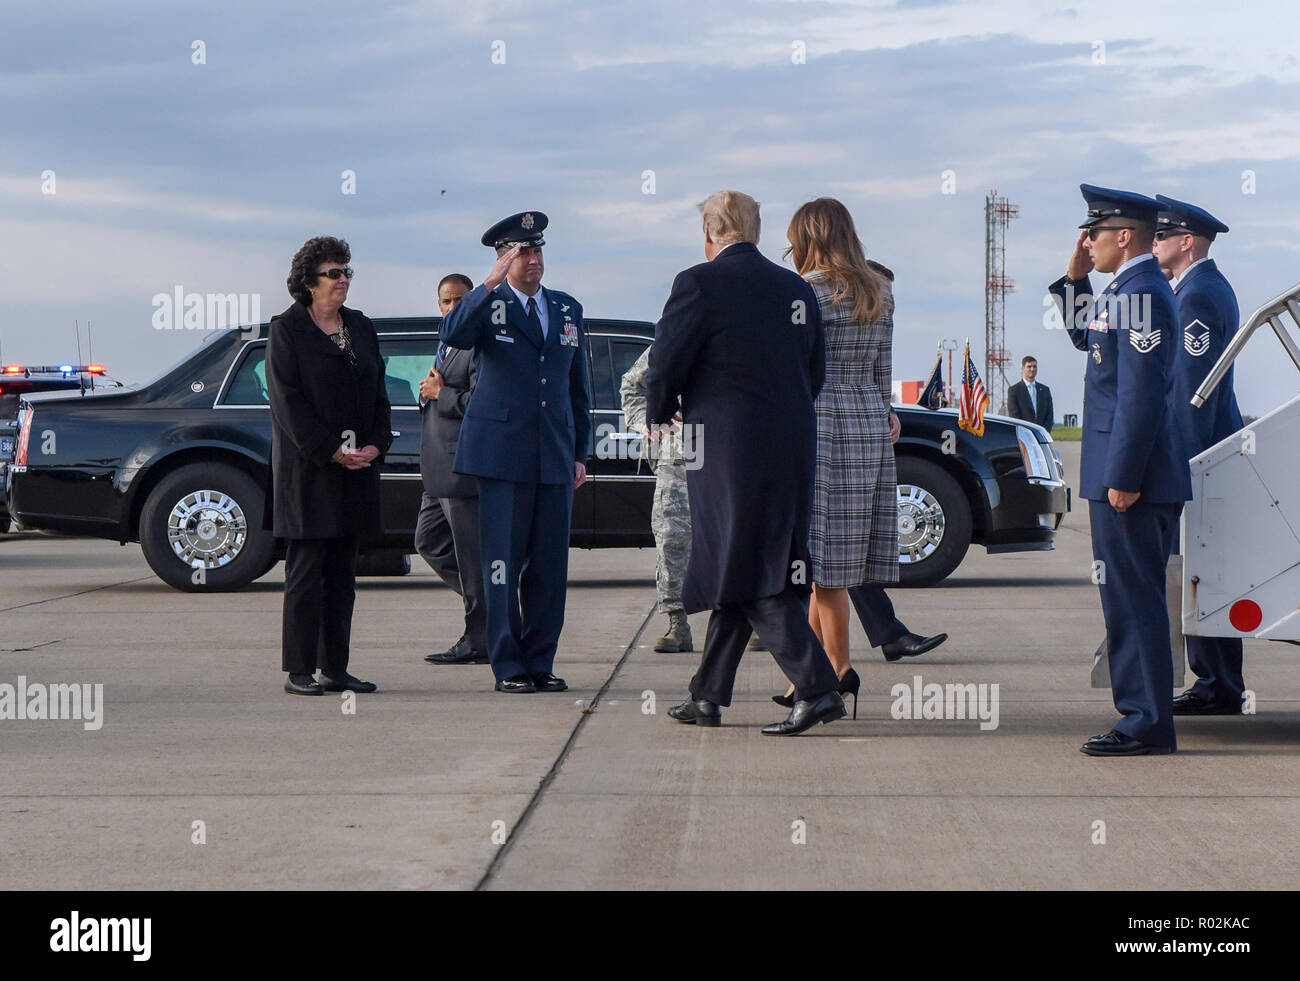 171st Air Refueling Wing Commander Col. Mark Goodwill salutes President Donald Trump and First Lady Melania Trump as they exit Air Force One near Pittsburgh, Oct. 30, 2018. President Trump's visit to Pittsburgh came after 11 people lost their lives in an anti-semitic attack in Squirrel Hill, Oct. 27, 2018. (U.S. Air National Guard photo by Staff Sgt. Bryan Hoover) Stock Photo